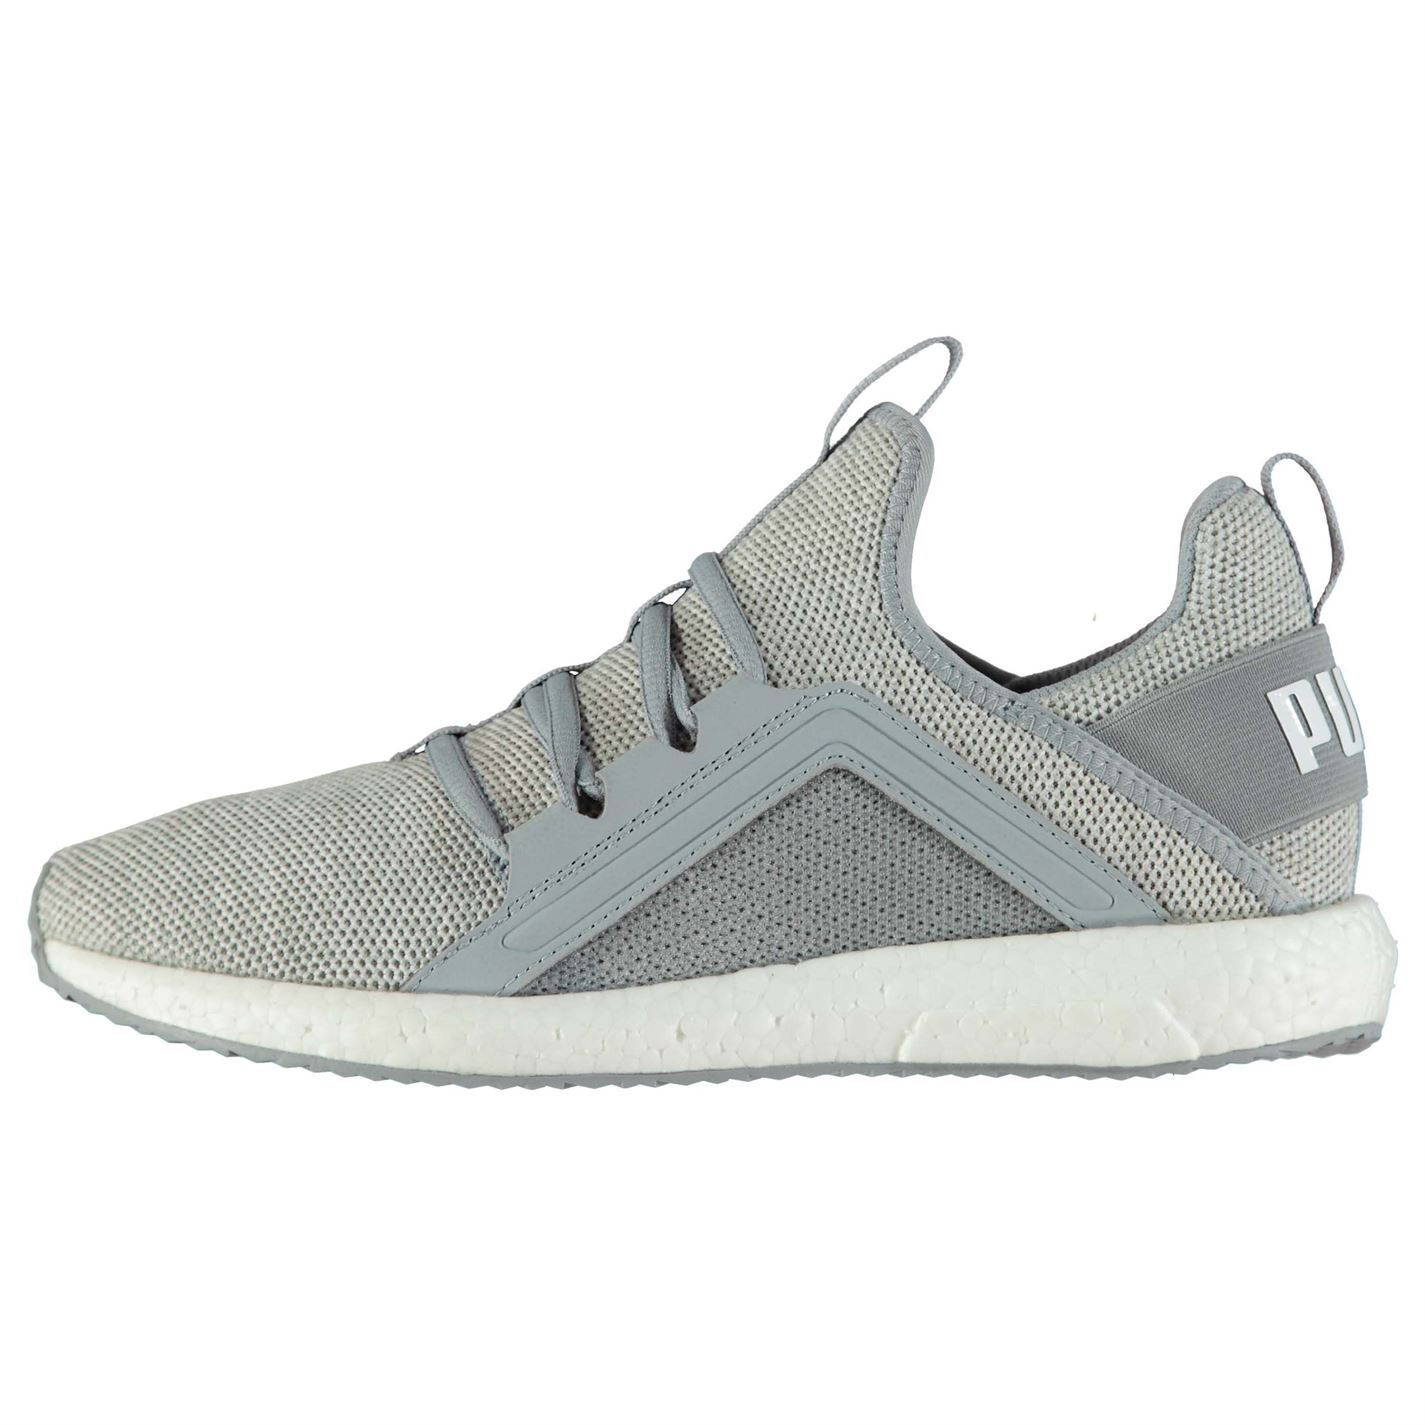 cd6f74578c87 ... Puma Mega NRGY Knit Running Shoes Womens Grey Run Jogging Trainers  Sneakers ...